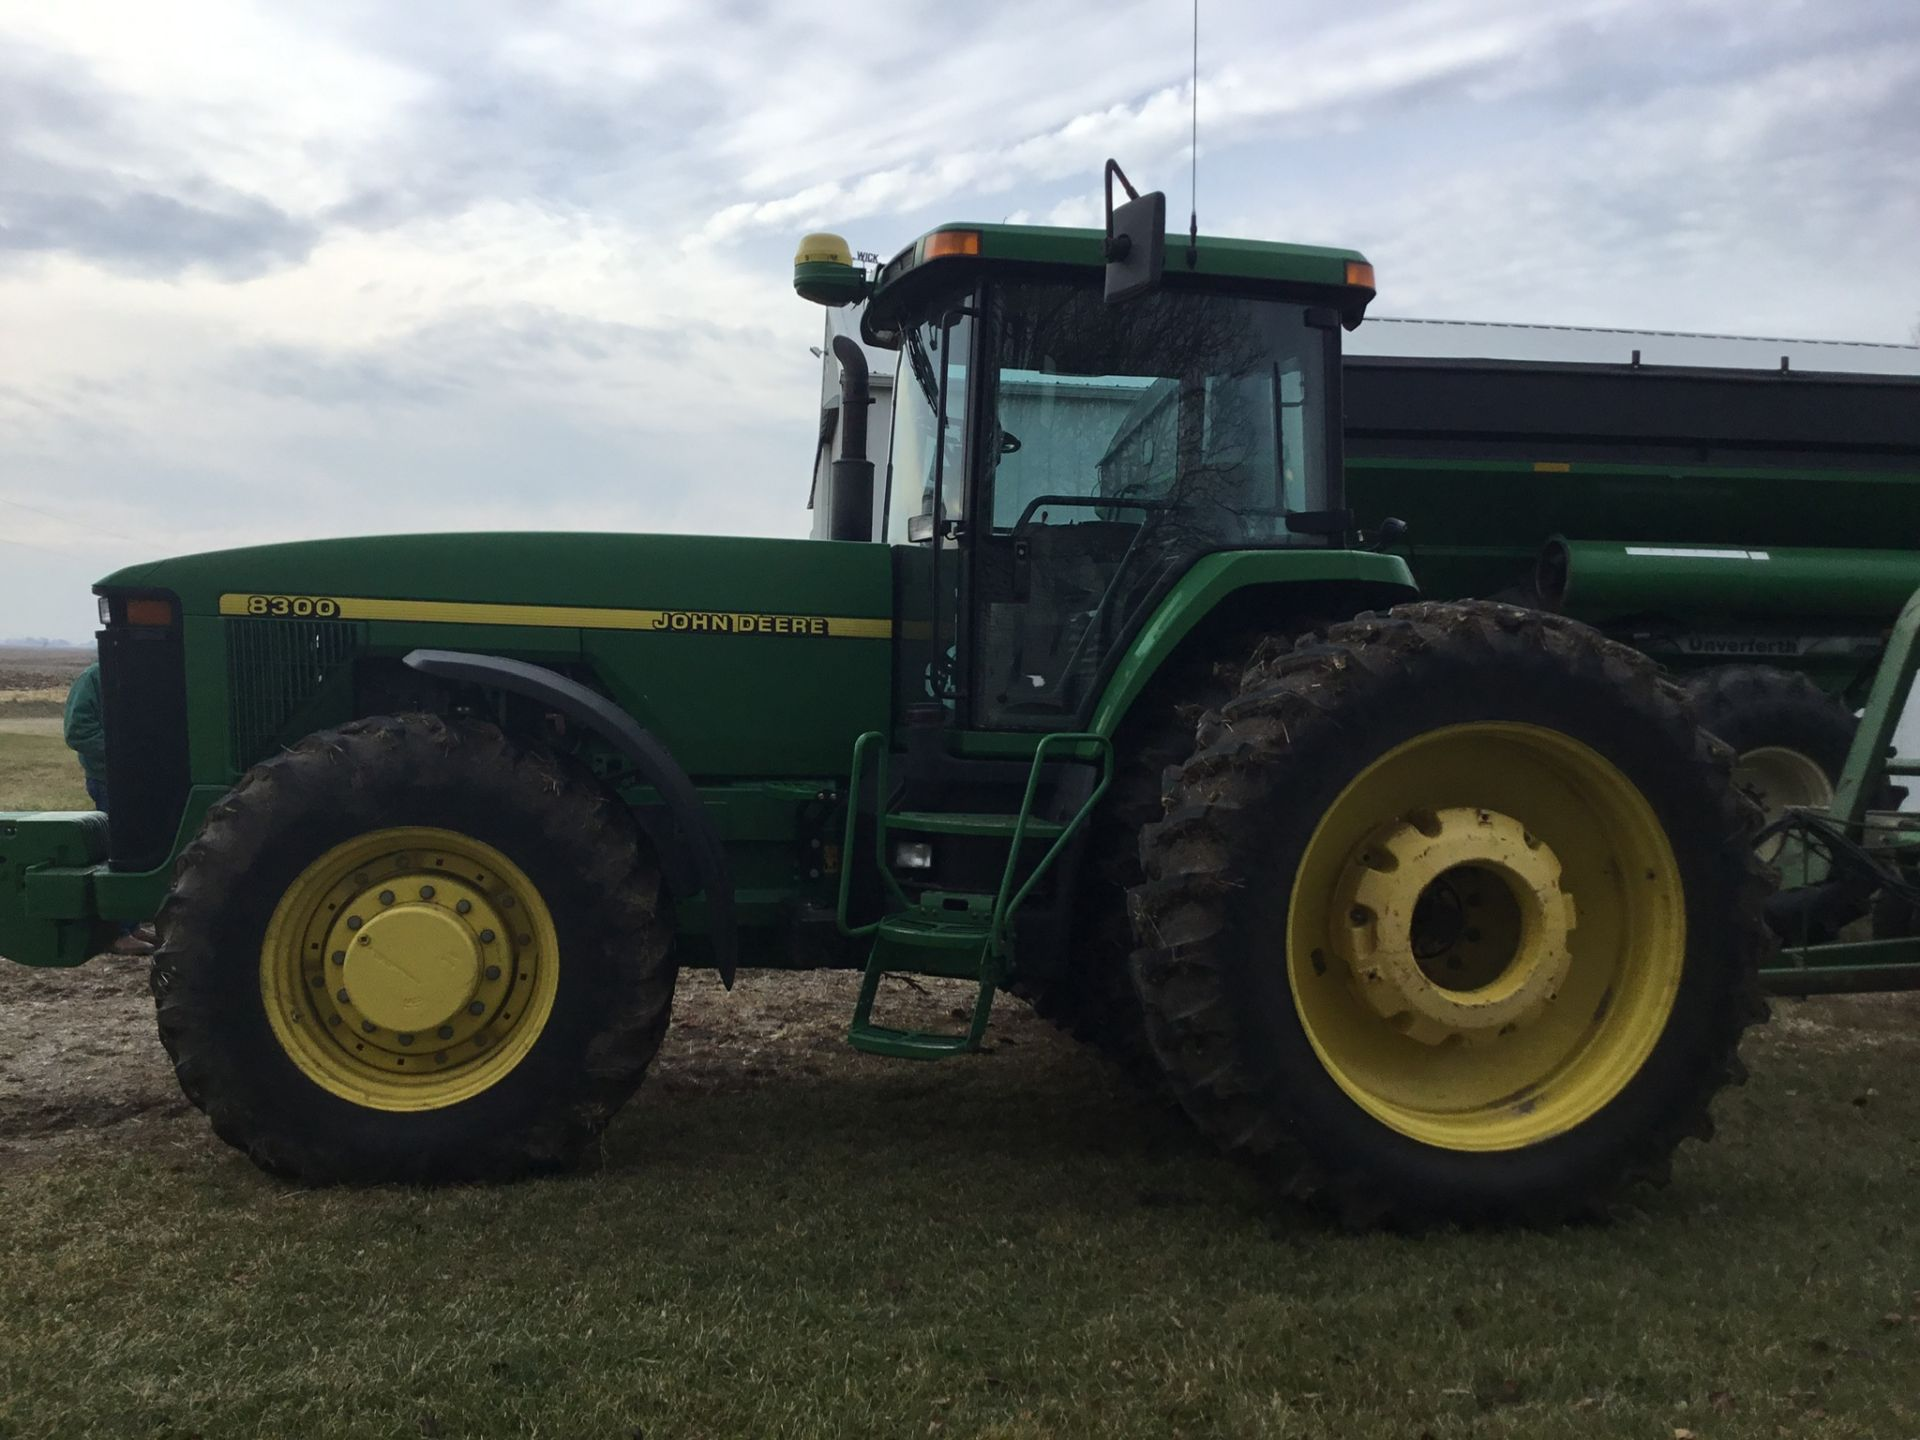 1997 John Deere 8300 MFWD, Power Shift, 3 Hydraulic Remotes, 3 Pt., Quick Hitch, PTO, Green Star - Image 25 of 25